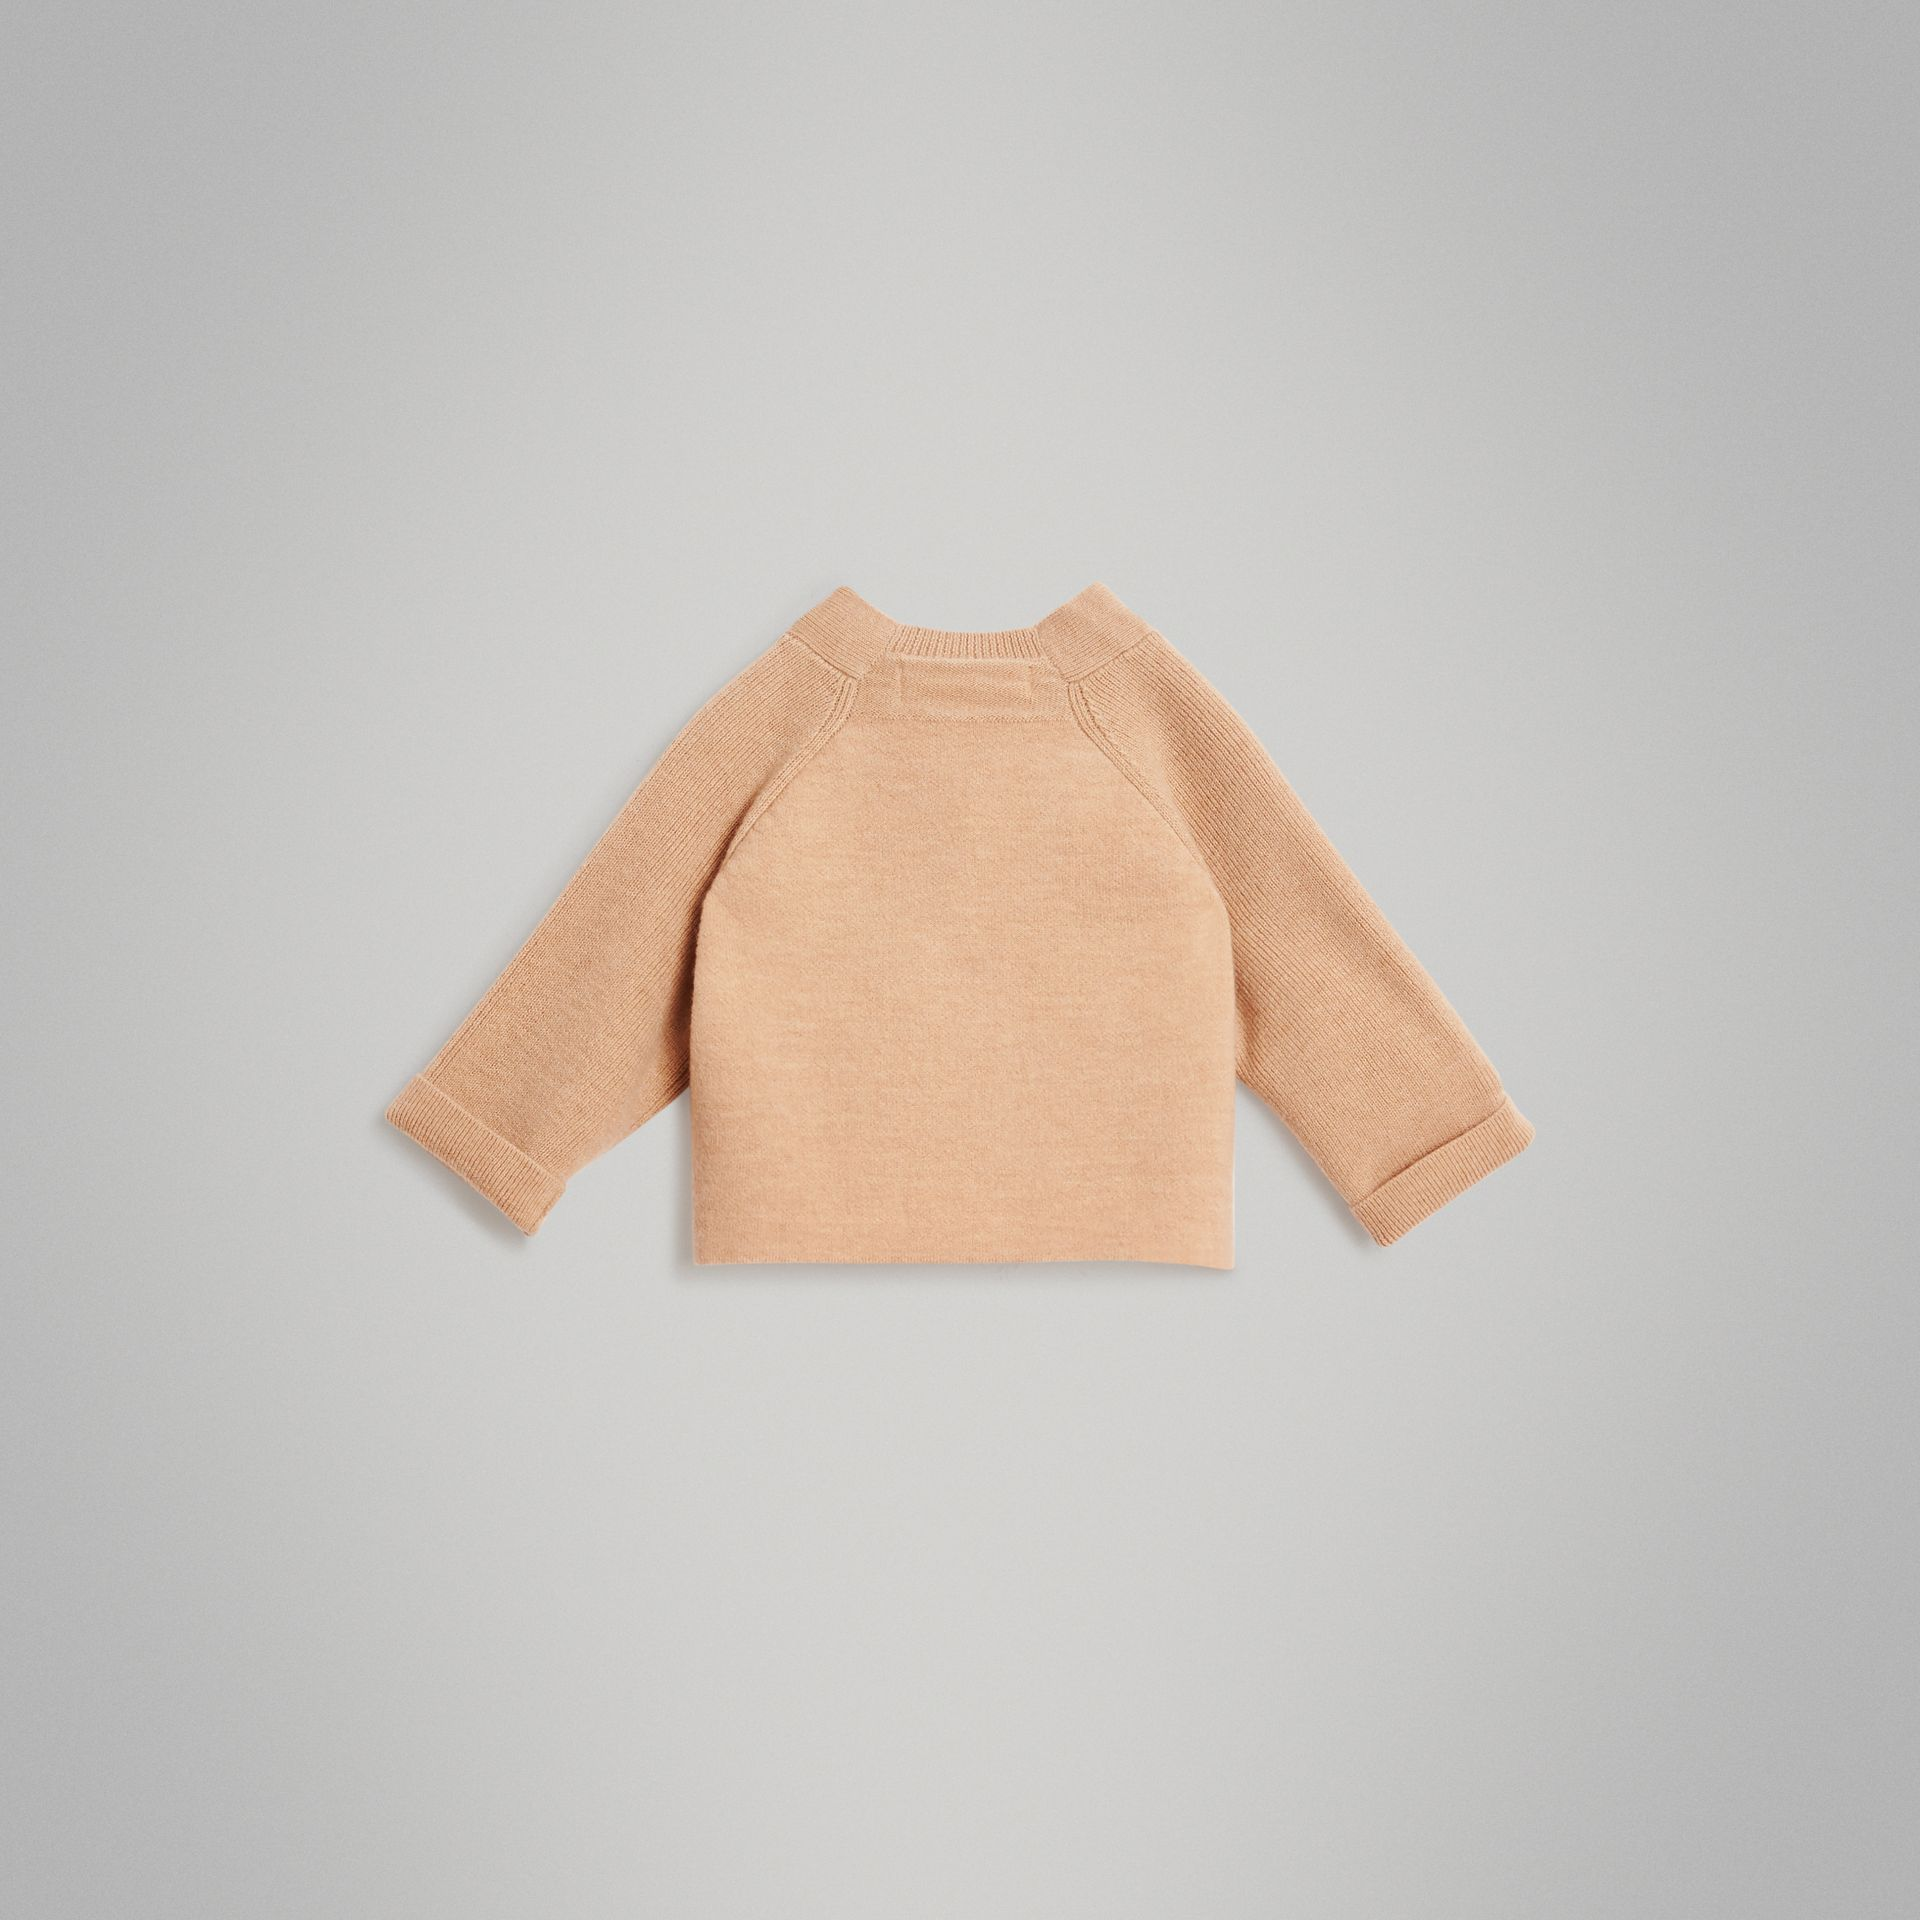 Cashmere Cotton Knit Cardigan in Peach - Children | Burberry United Kingdom - gallery image 3